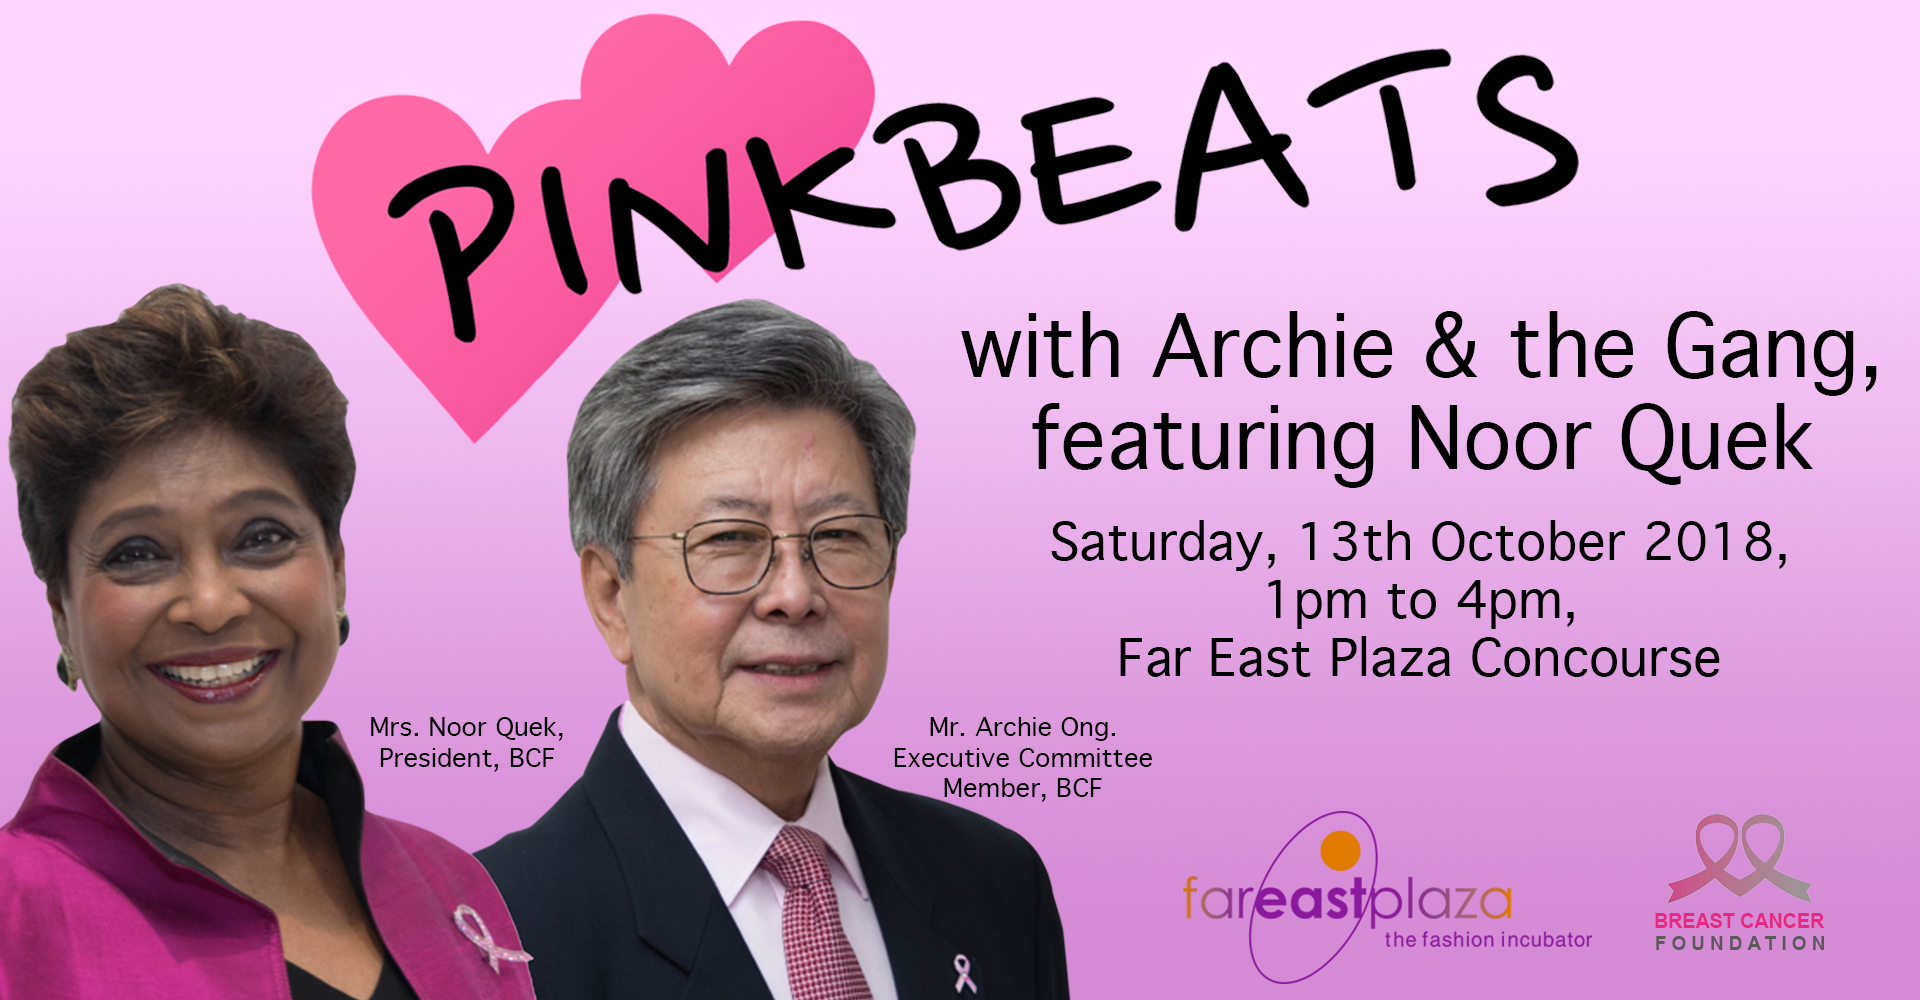 PINKBEATS with Archie & the Gang, featuring Noor Quek